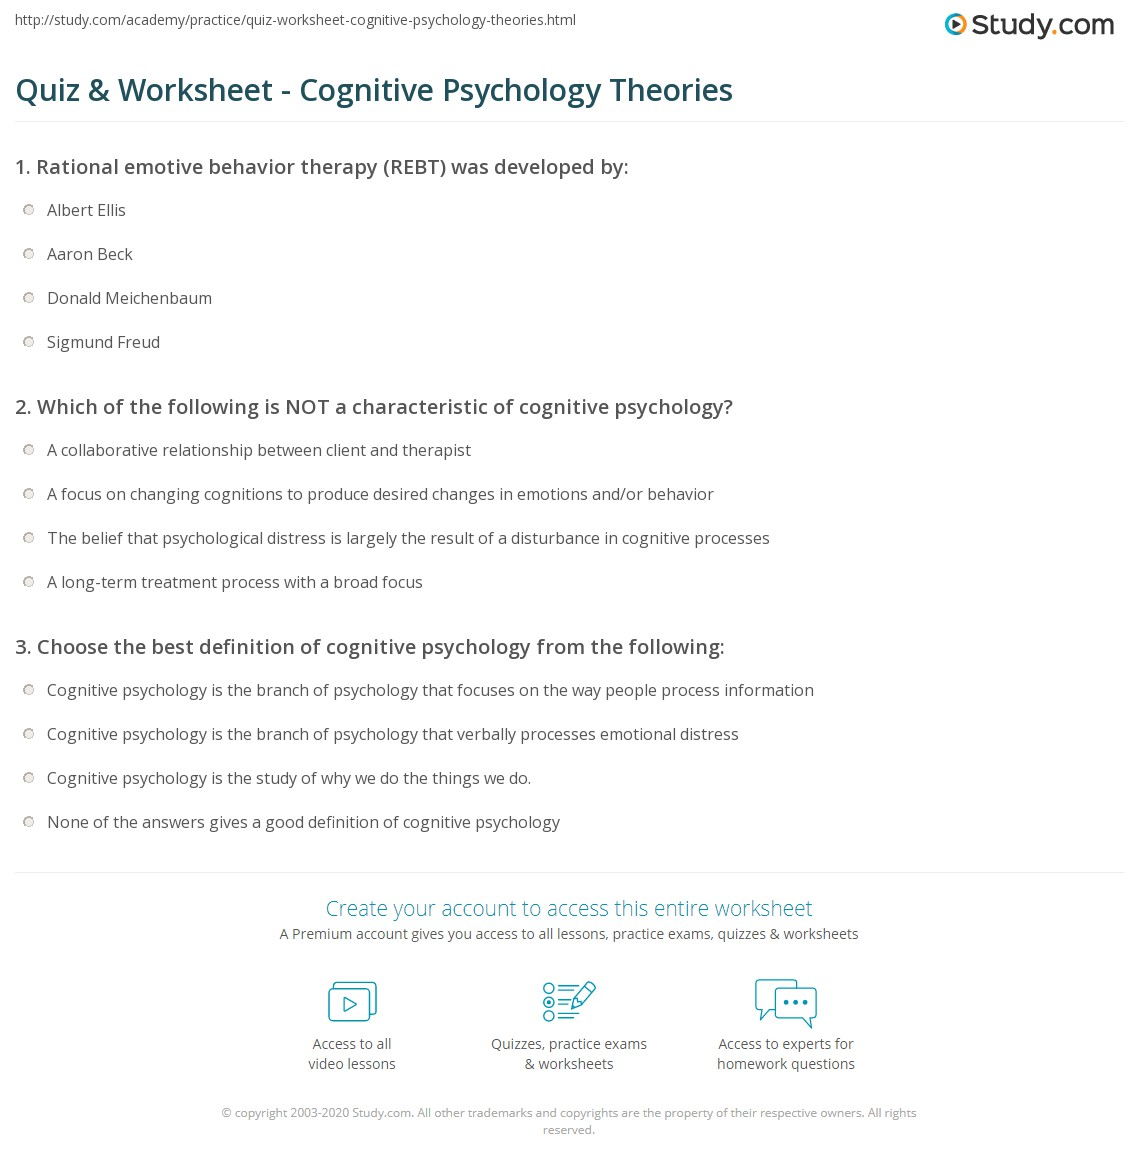 Theories Of Emotion Worksheet Answers